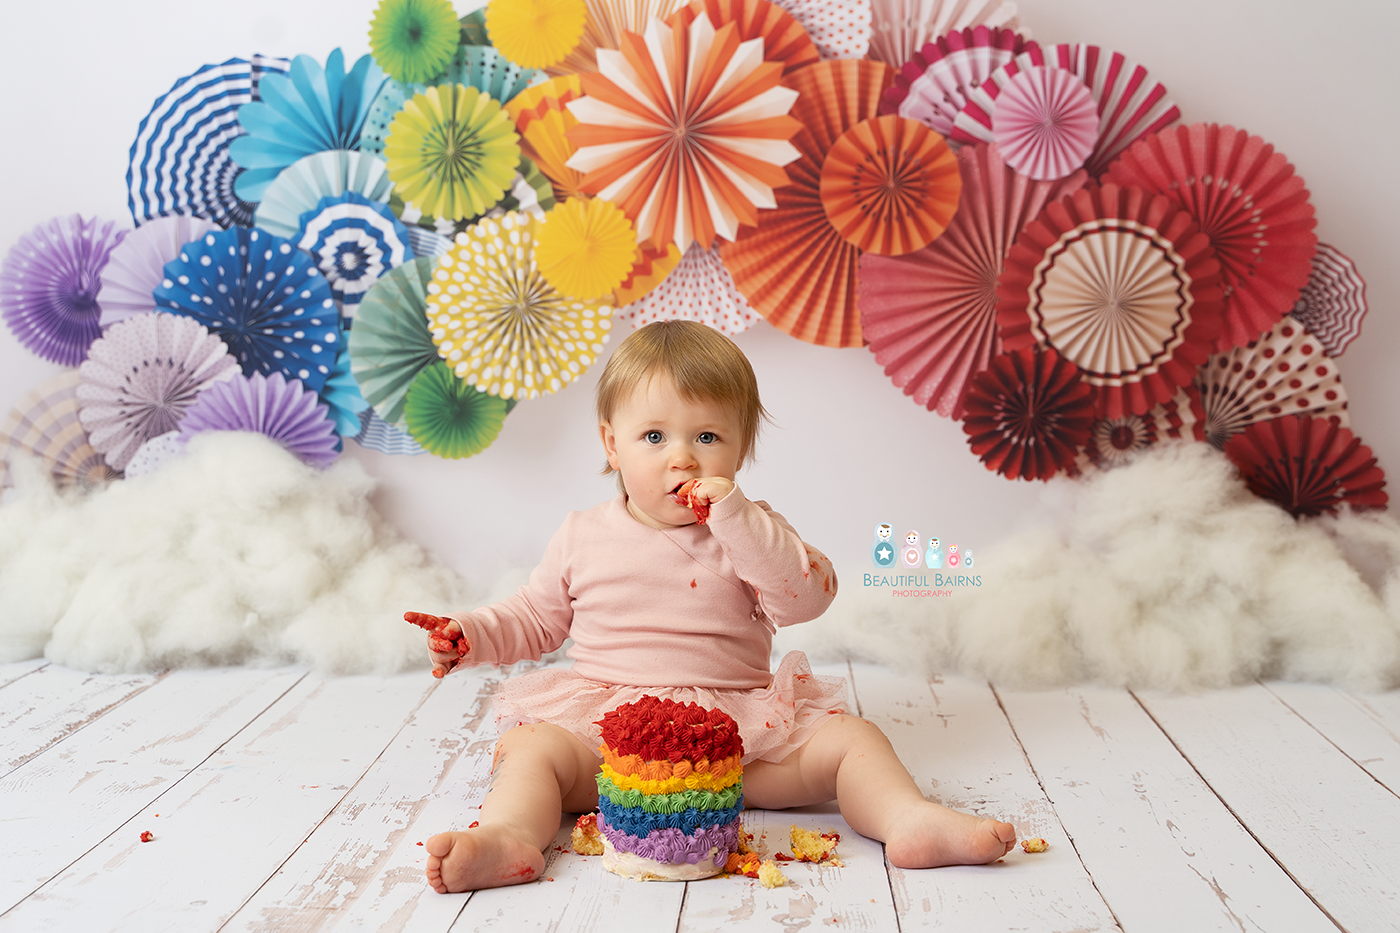 cake smash photo of little girl celebrating 1st birthday with a rainbow themed cake smash with rainbow cake and rainbow paper fans behind her by cake smash photographer beautiful bairns photography edinburgh